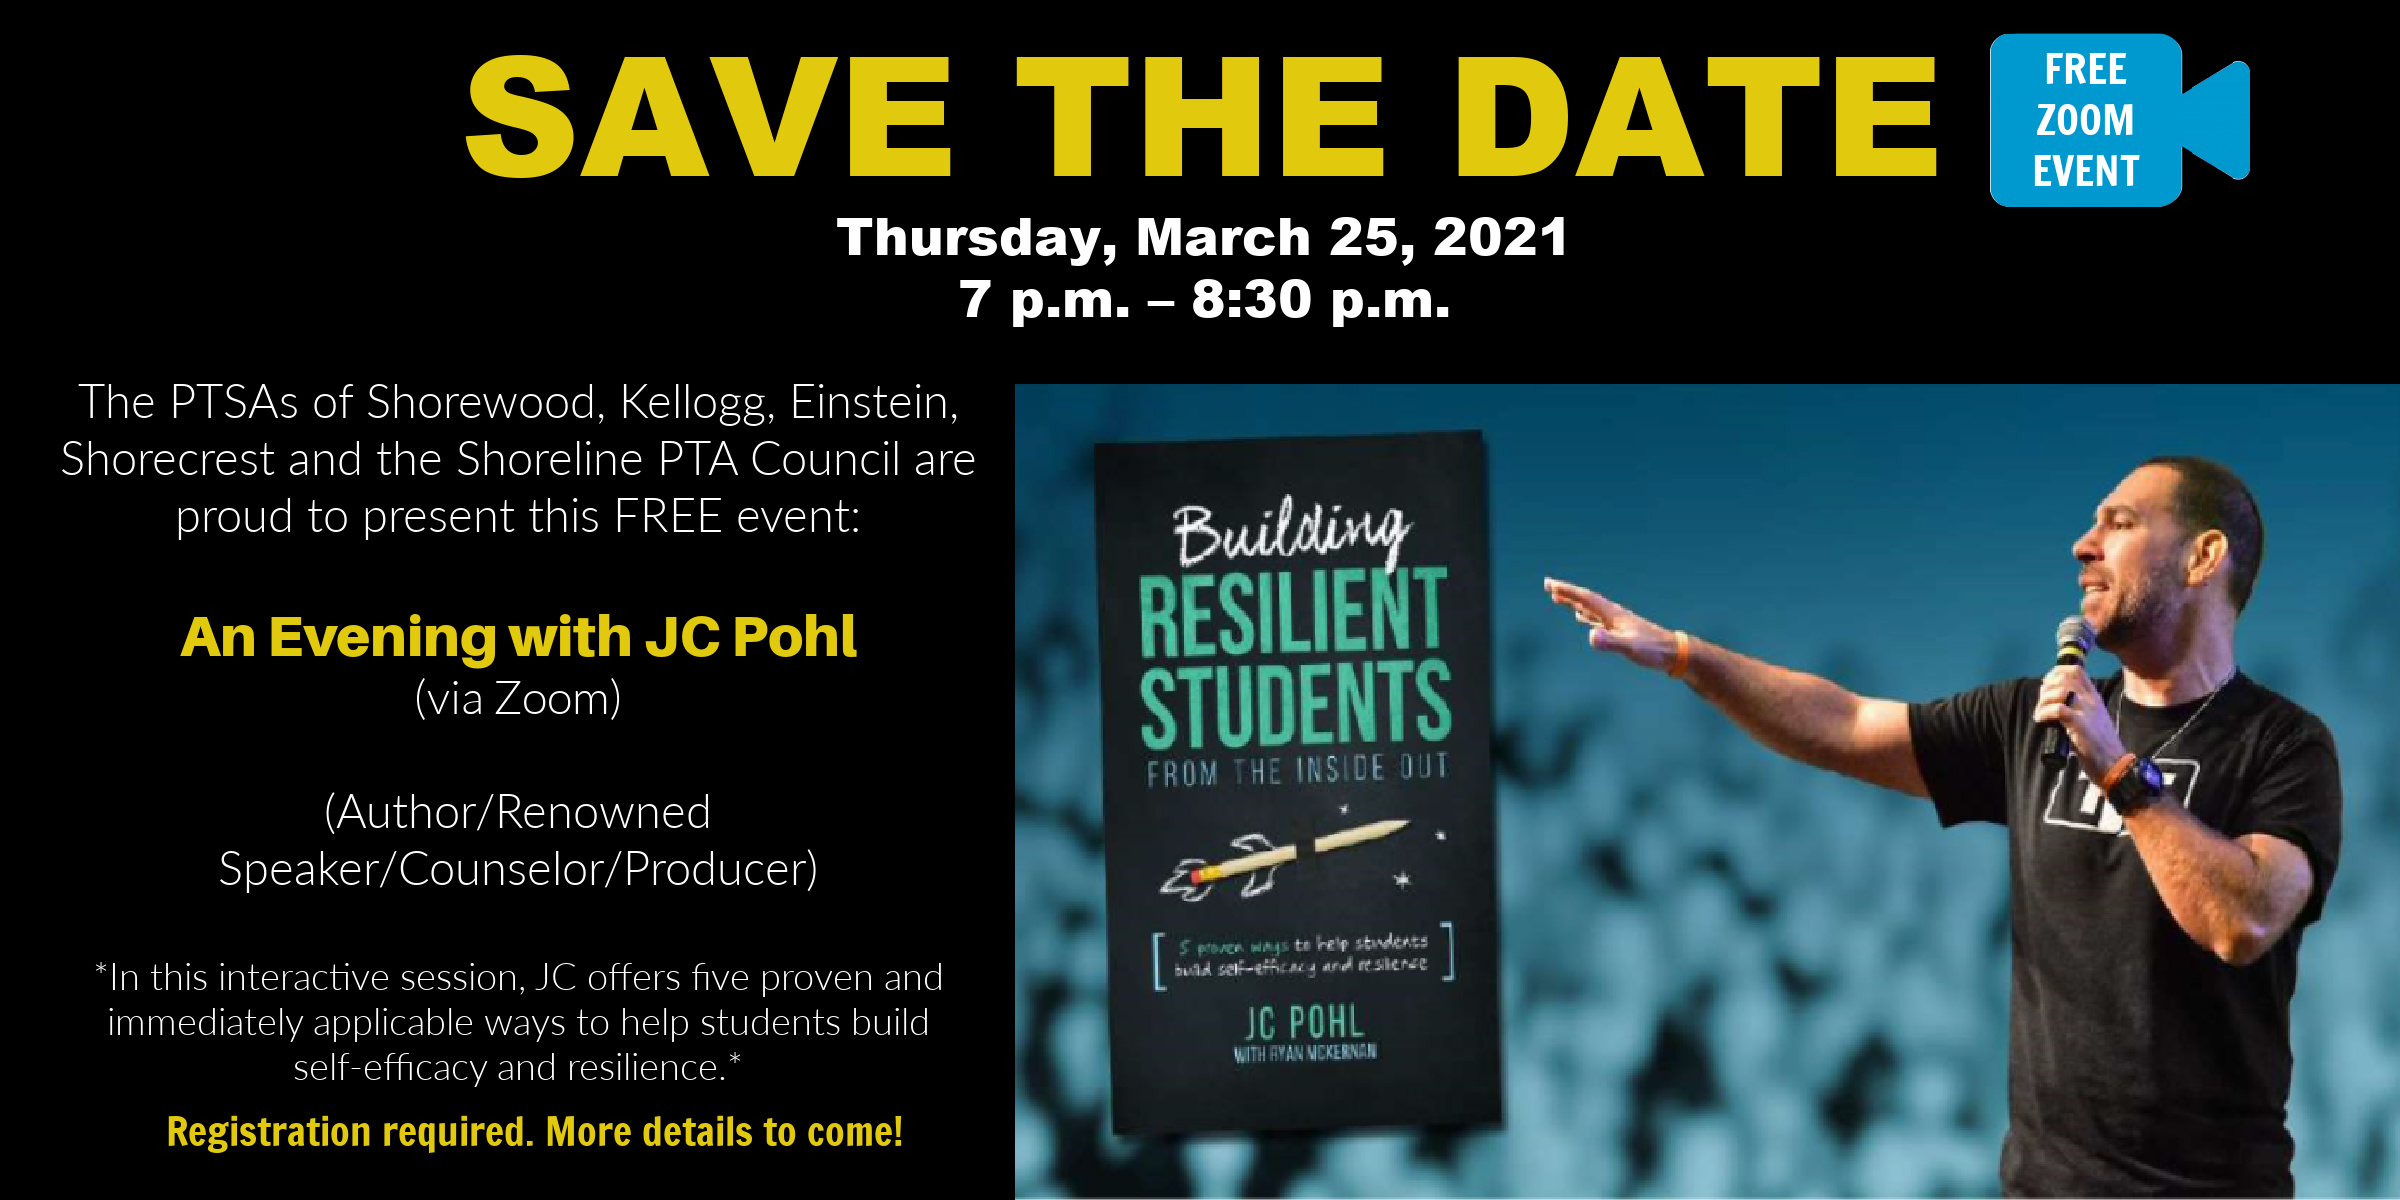 Save the date 3/25 – Building Resilient Students